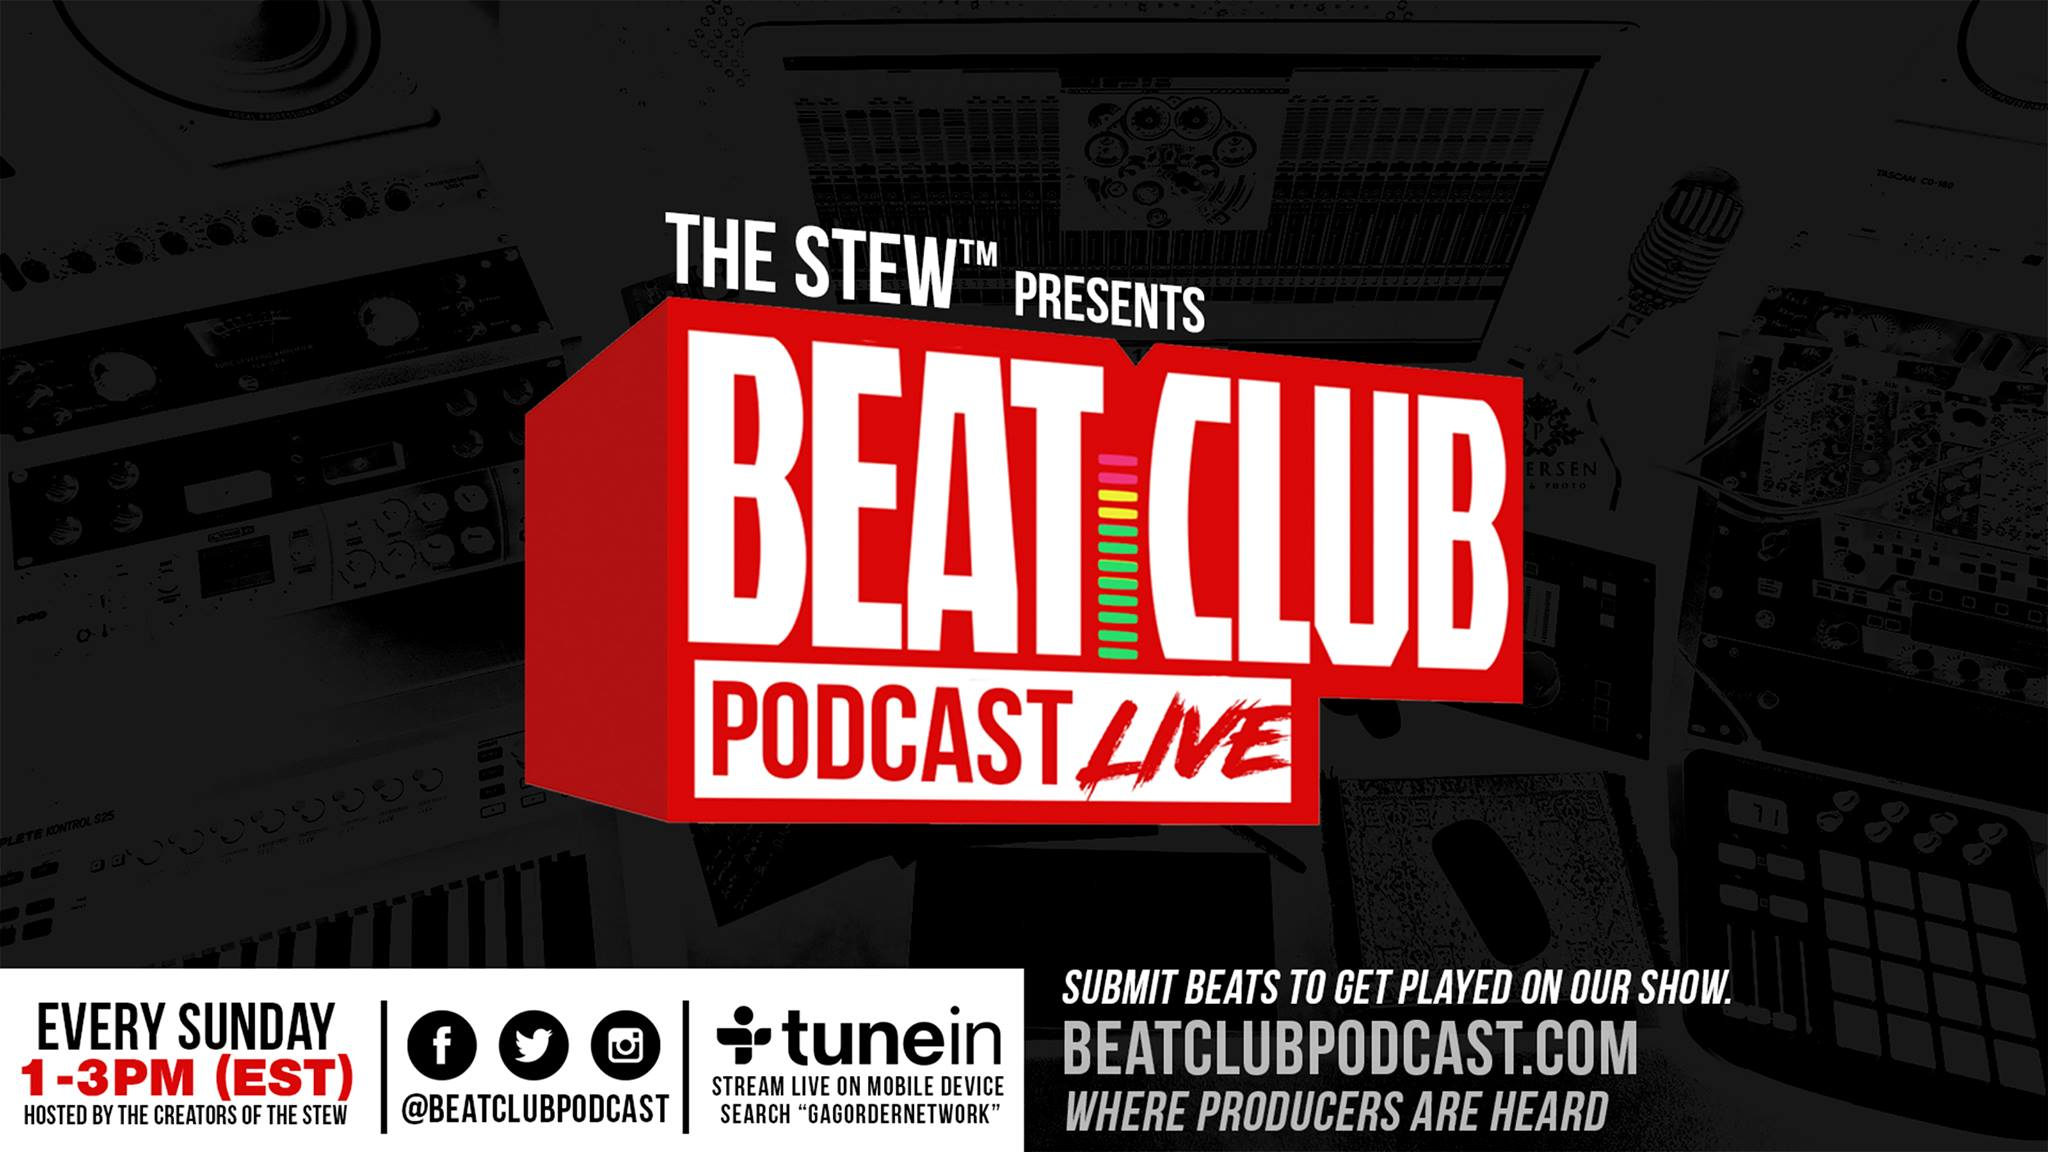 """The creators of The Stew have come together to create a radio platform for producers and creatives who loves beats. Listen in as our comedic and uncensored hosts share production from their growing community of producers, the Beat Club™, interview special guests and cover topics from a producers point of view.  Calling all Beatmakers & Producers. Sign up for FREE at the door & get your beats heard! We'll be doing our  #KeepItOrCutIt segment of the show live. One lucky beatmaker/producer will win a battle slot at the next Stew Beat Showcase in June.  Limited space. Early arrival recommended.  --  [EXHIBITION BEAT BATTLES]  TBA  --  Listen to past episodes here: www.beatclubpodcast.com. EVERY SUNDAY 1pm - 3pm EST we are LIVE on air. Listen by going to www.beatclubpodcast.com or download the TuneIn app and search """"Gag Order Network"""". You can also follow us at  www.soundcloud.com/beatclubpodcast and on iTunes.  --  Follow us on Instagram & Twitter: @BeatClubPodcast   Producer join our exclusive Facebook group: http://www.facebook.com/groups/beatclubpodcast   Follow the hosts: Loopz - IG: @doitallloopz  Twitter: @doitallloopz  Merren - IG: @authenticmerren  Twitter: @markmerren   Avi - IG: @artofficialavi  Twitter: @artofficialavi"""